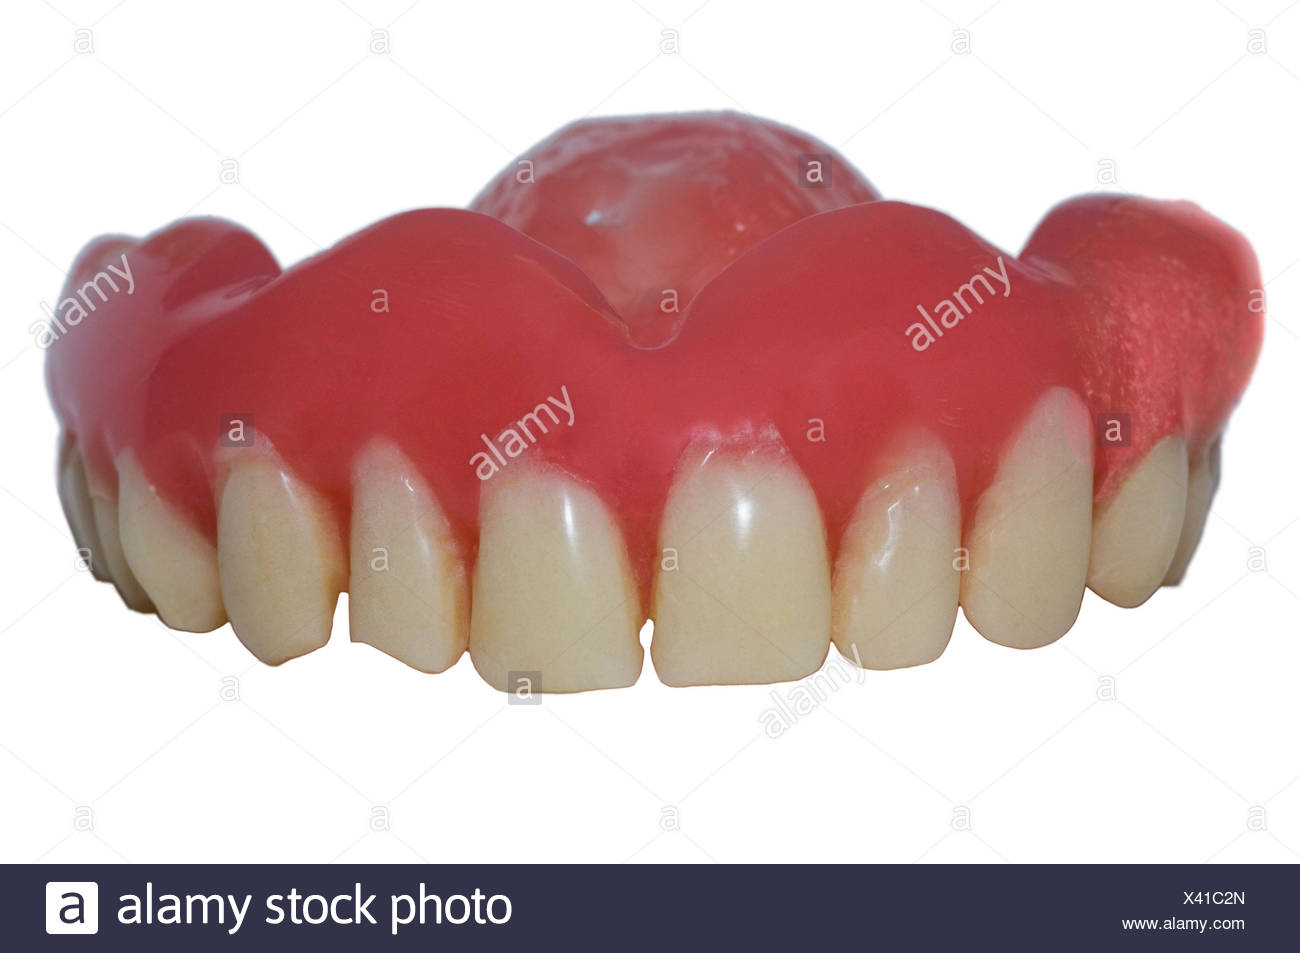 Close-up of a denture over white background - Stock Image